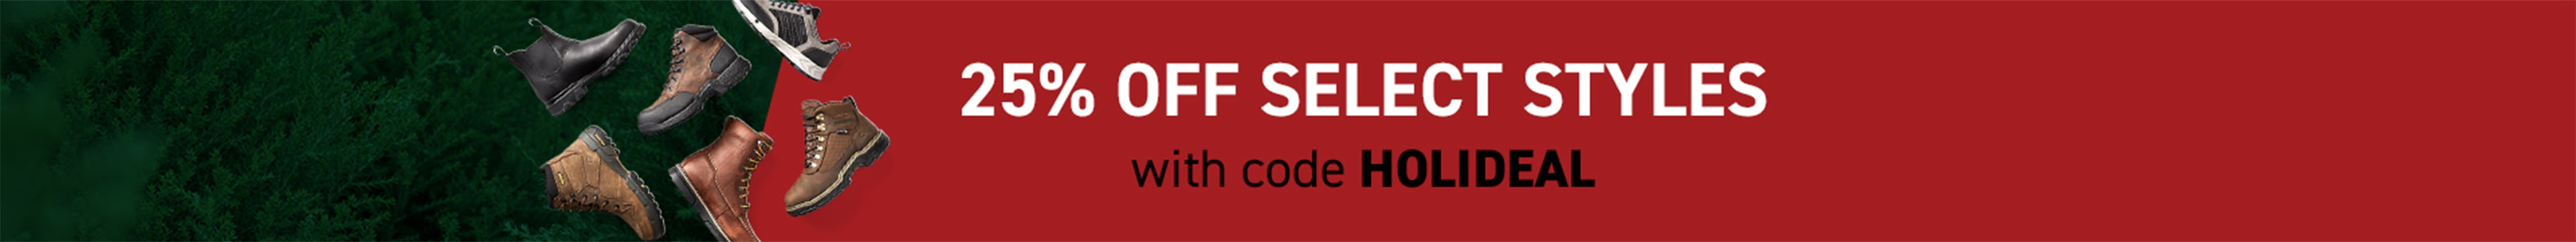 25% Off Select Styles with code HOLIDEAL.